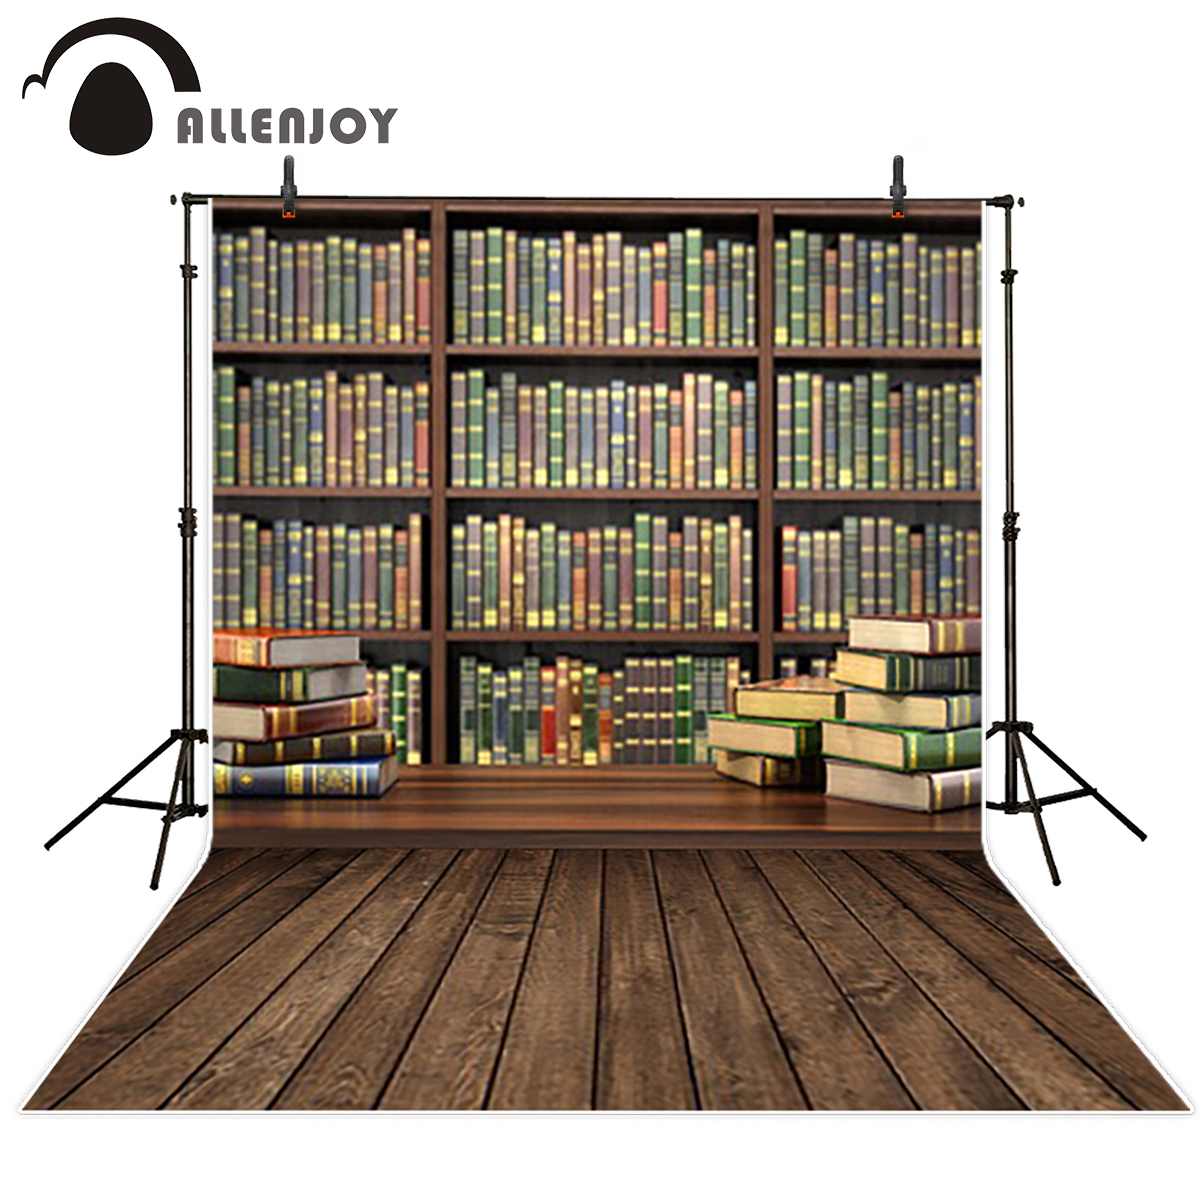 Allenjoy background for photographic studio Book Cabinets Learn education thin vinyl oxford polyester photography backdrops